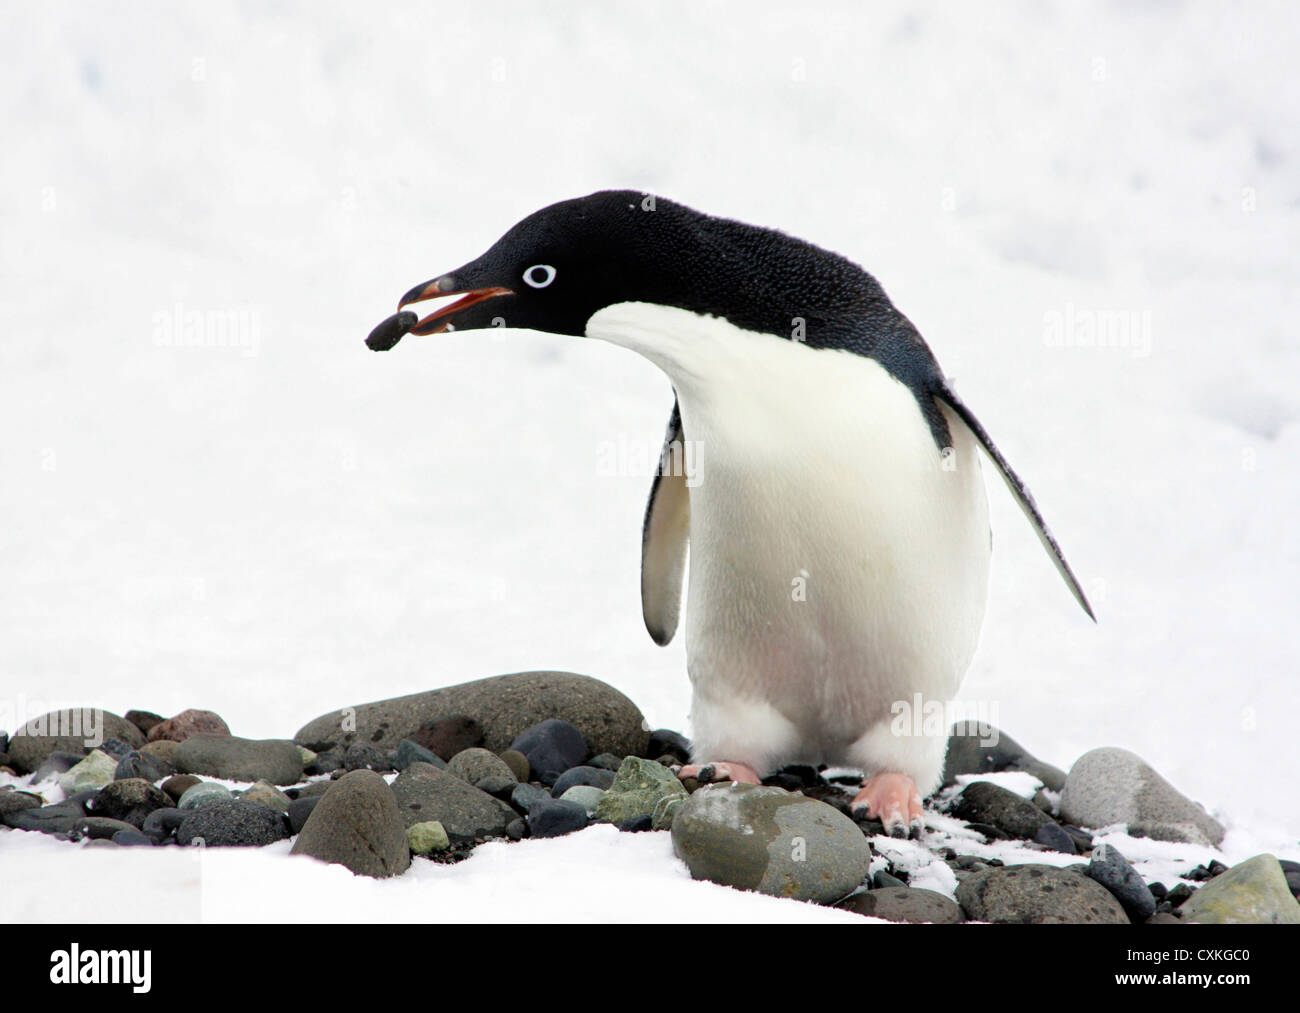 An Adelie Penguin (Pygoscelis Adeliae) at Paulet Island, Antarctic Peninsula, building a nest in the snow. - Stock Image